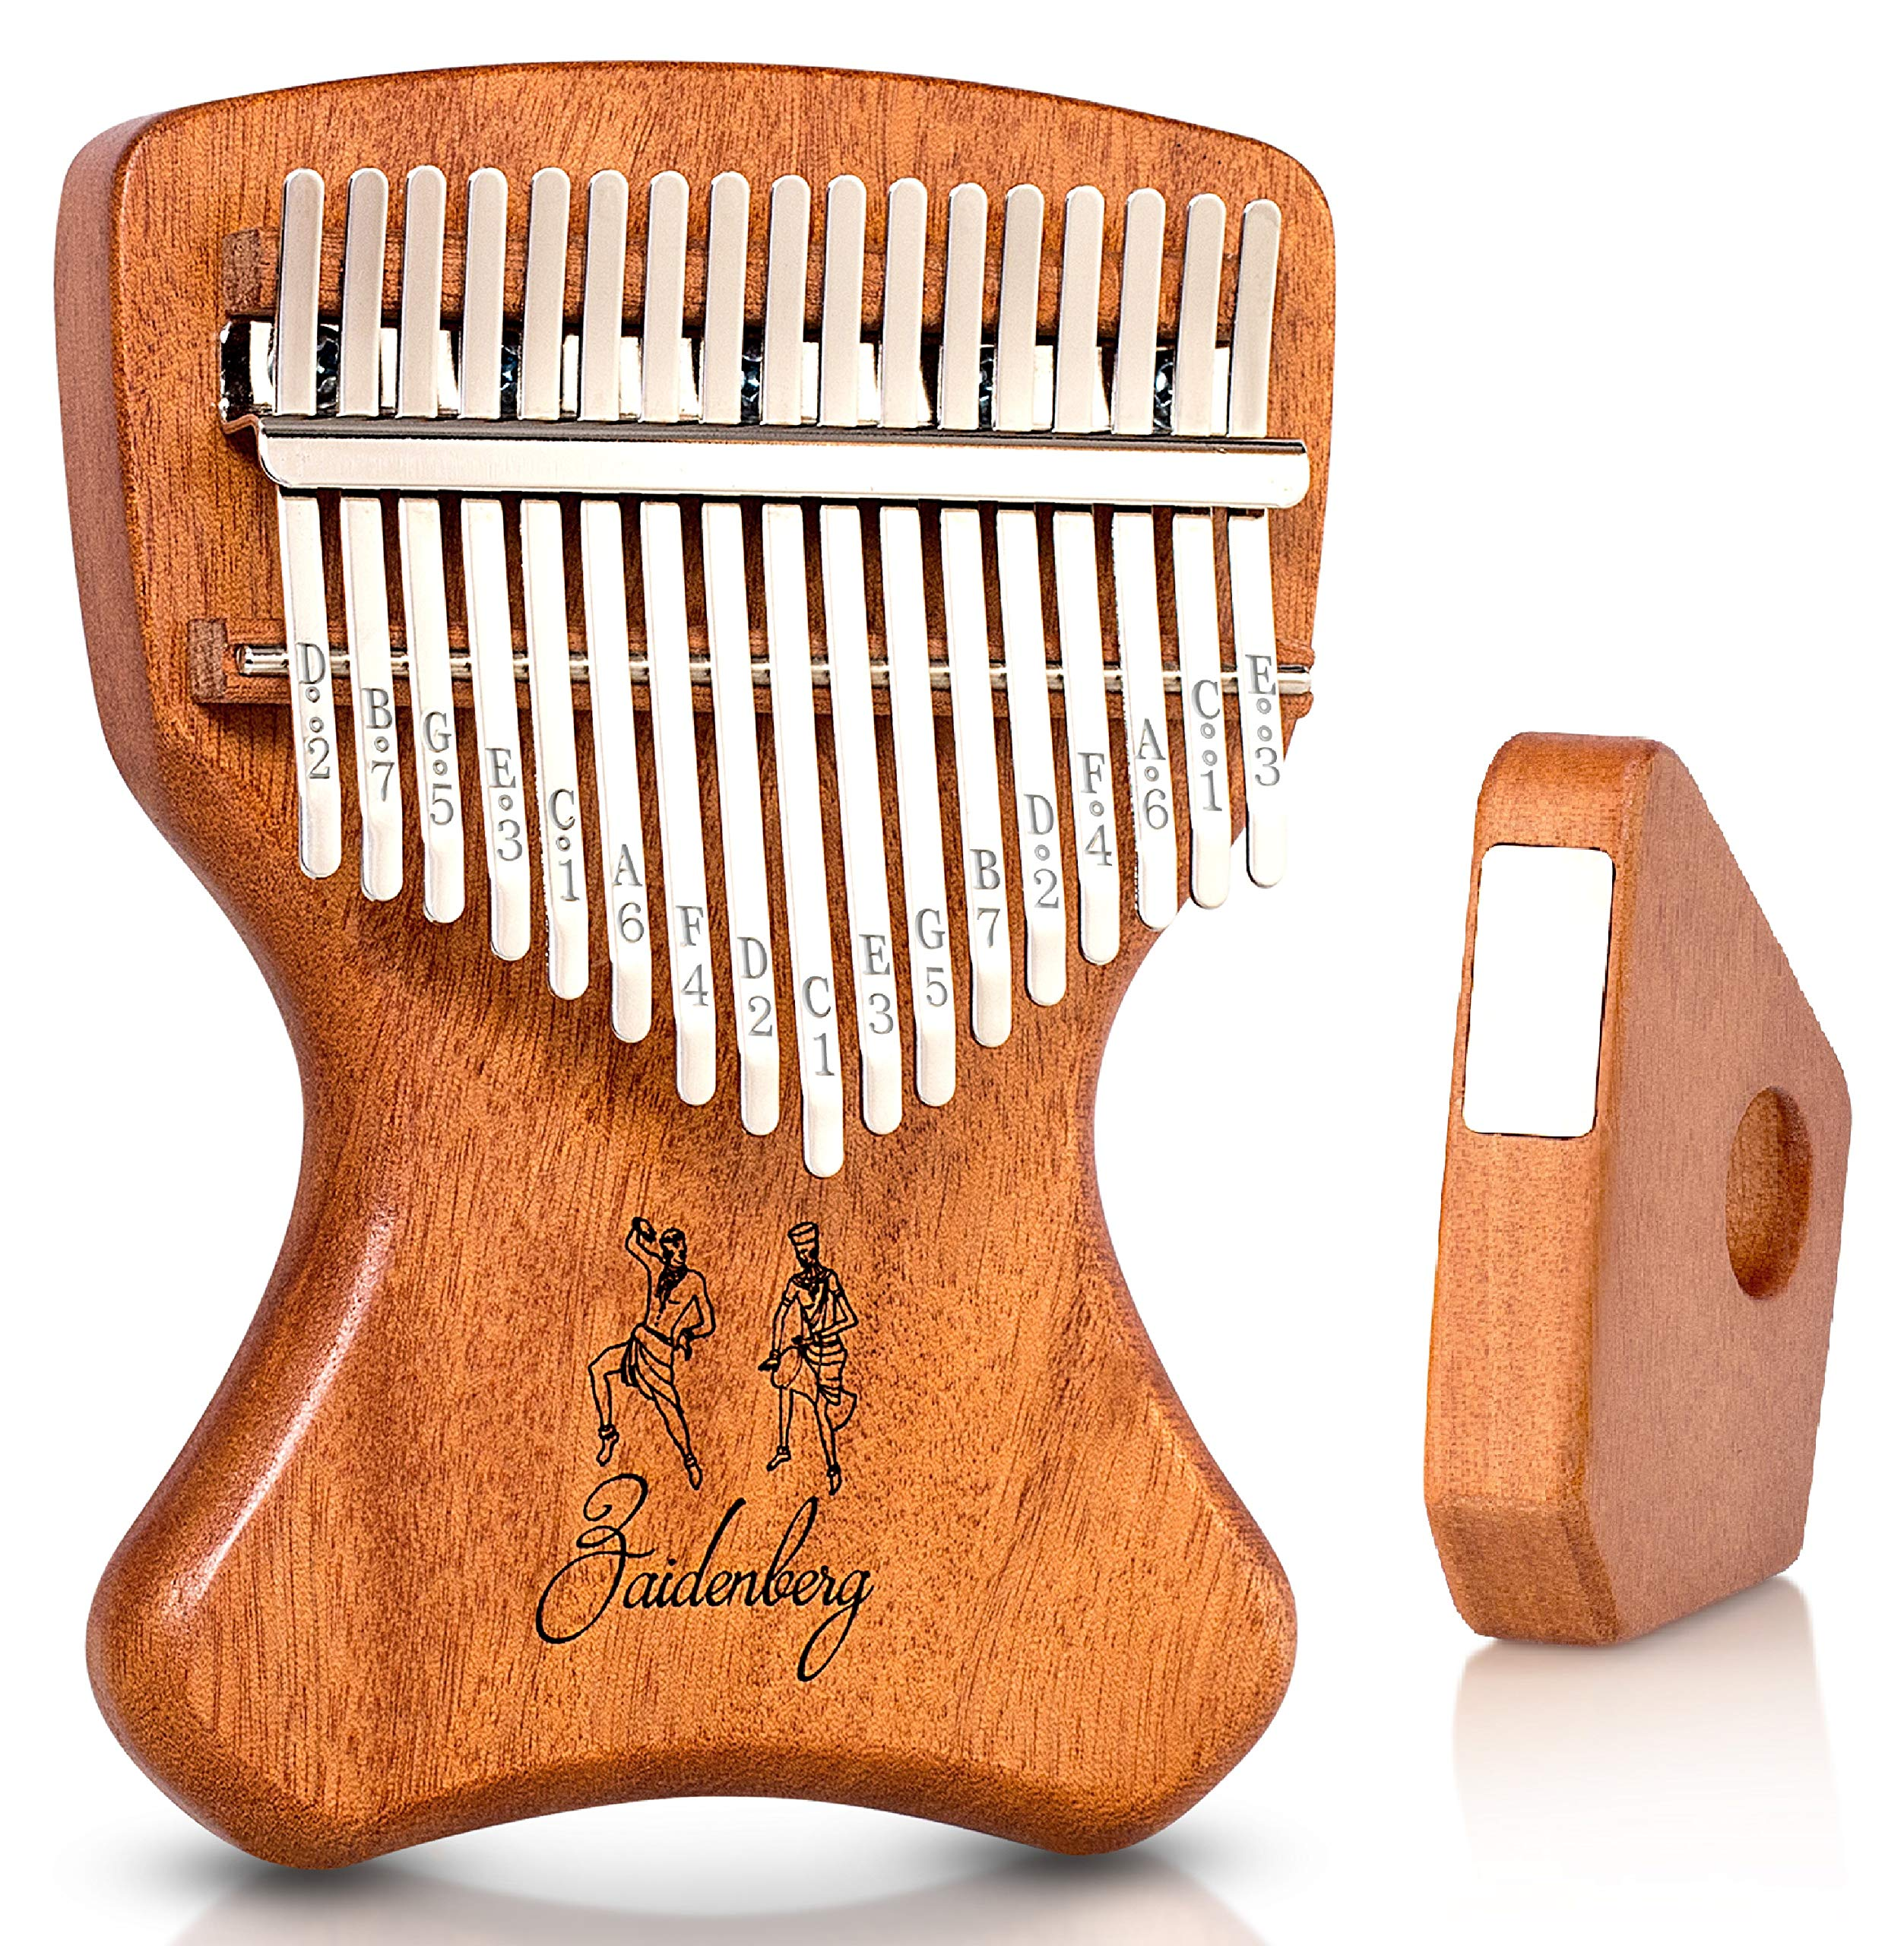 Zaidenberg Kalimba 17 Key Thumb Piano With Unique Design and Exclusive Magnetic Stand | Authentic African Mbira Made of Quality Solid Mahogany Wood | An Extraordinary Musical Instrument for the Soul by Zaidenberg